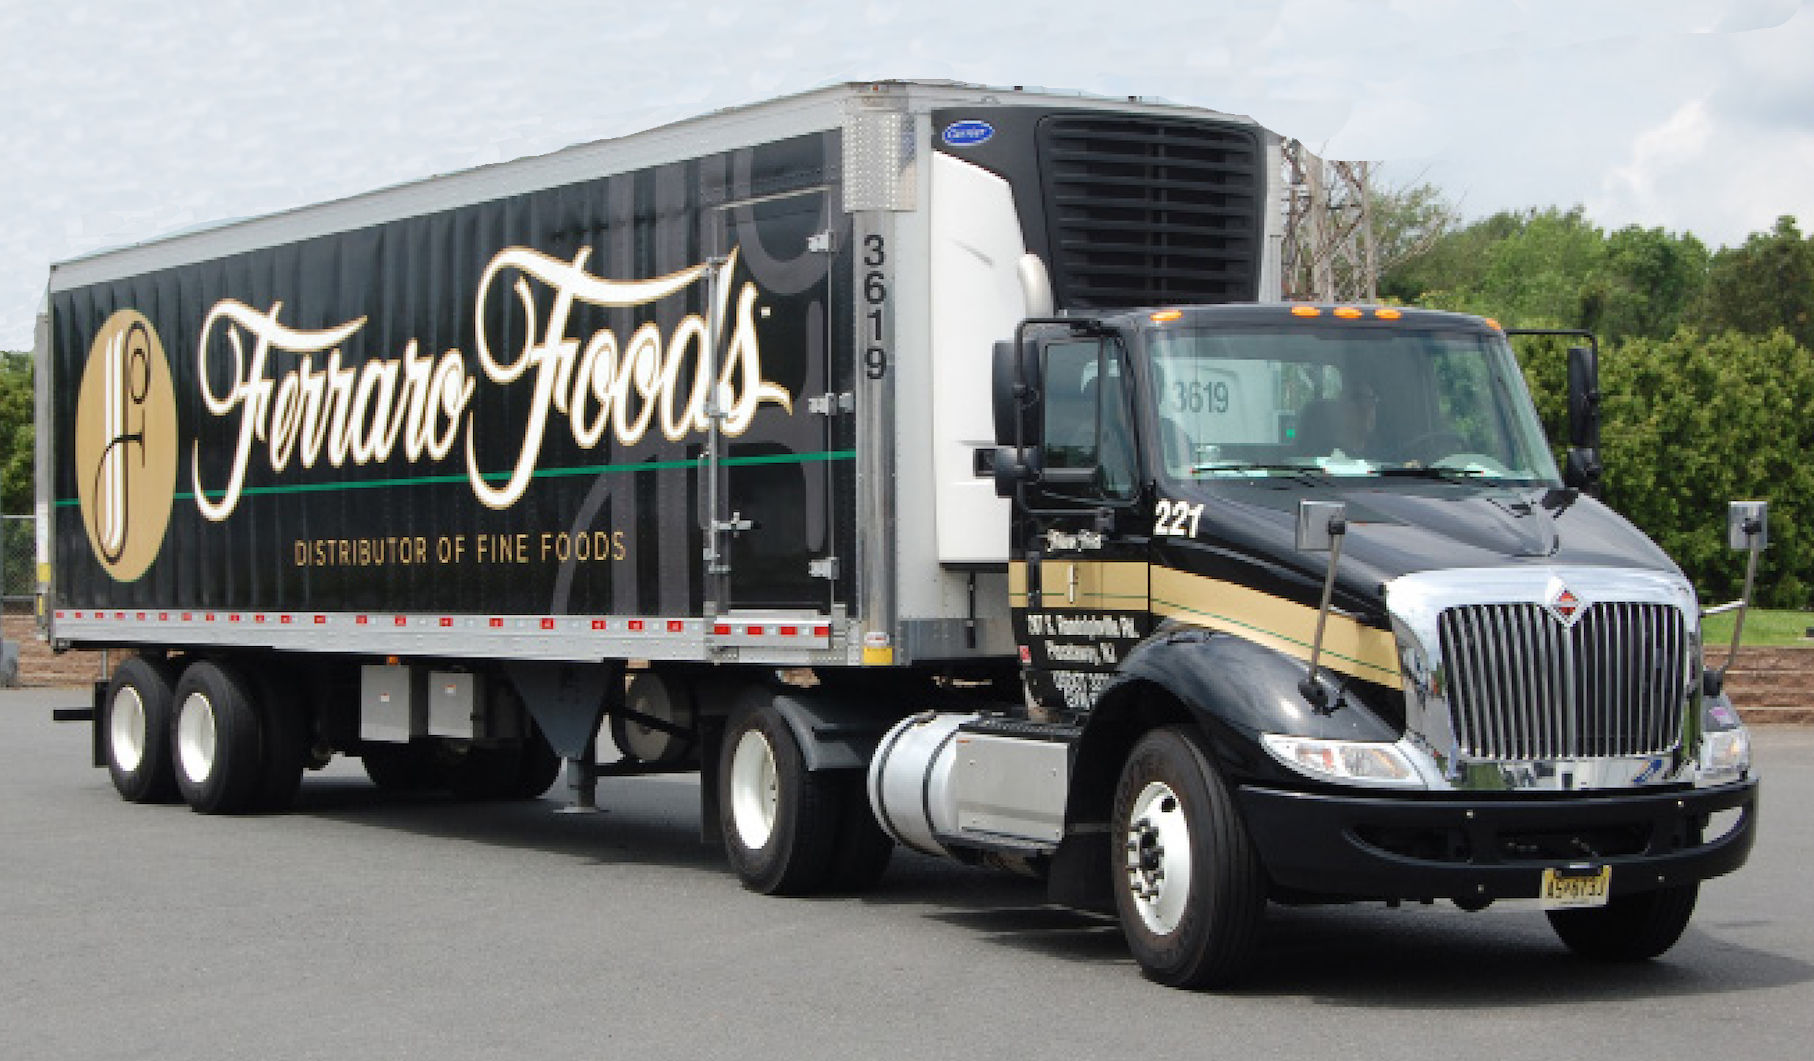 Ferraro Foods Distribution